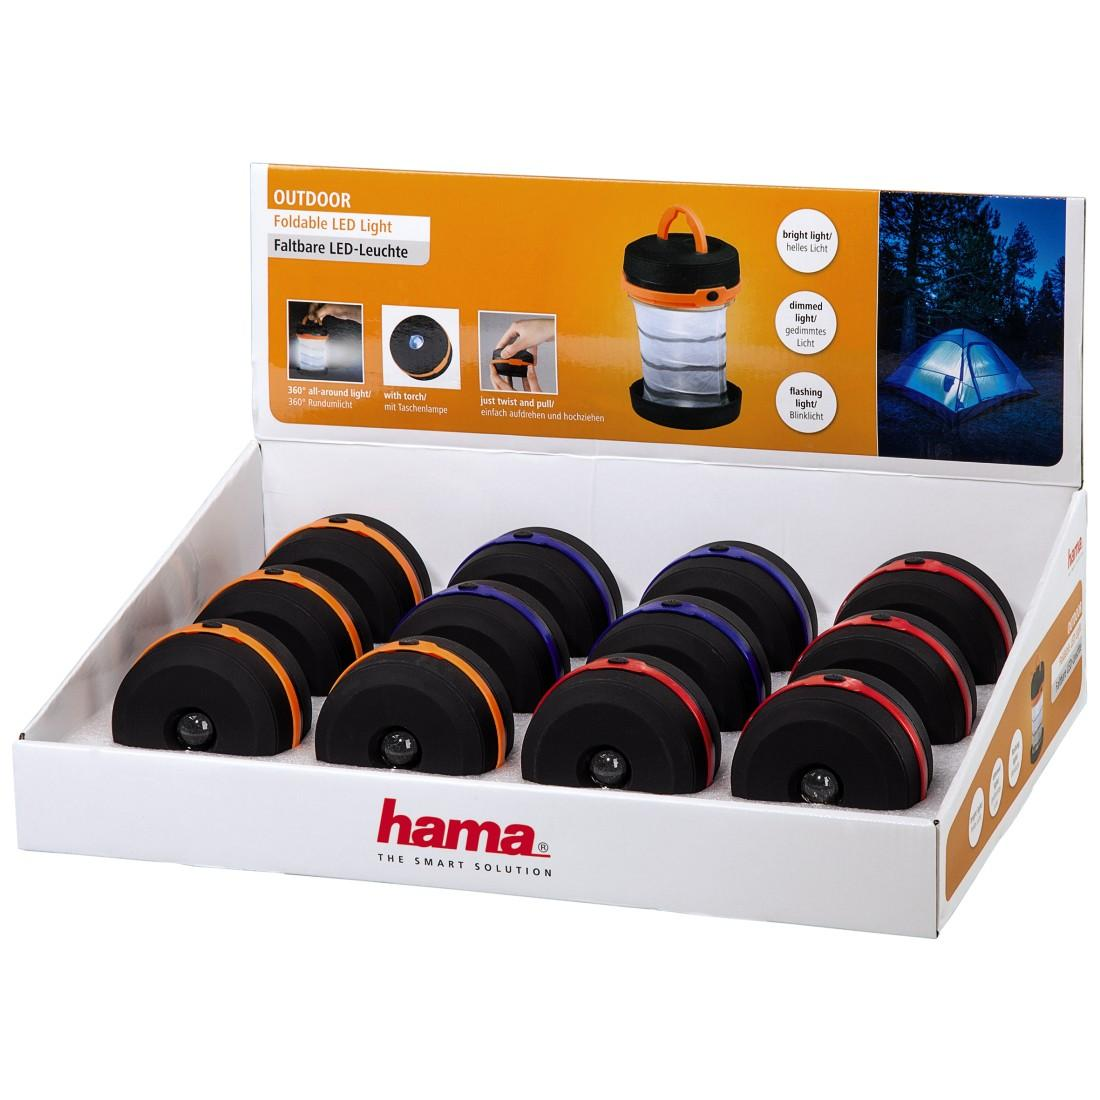 "Фенер HAMA ""Outdoor"" LED Light, 12 броя в кутия"